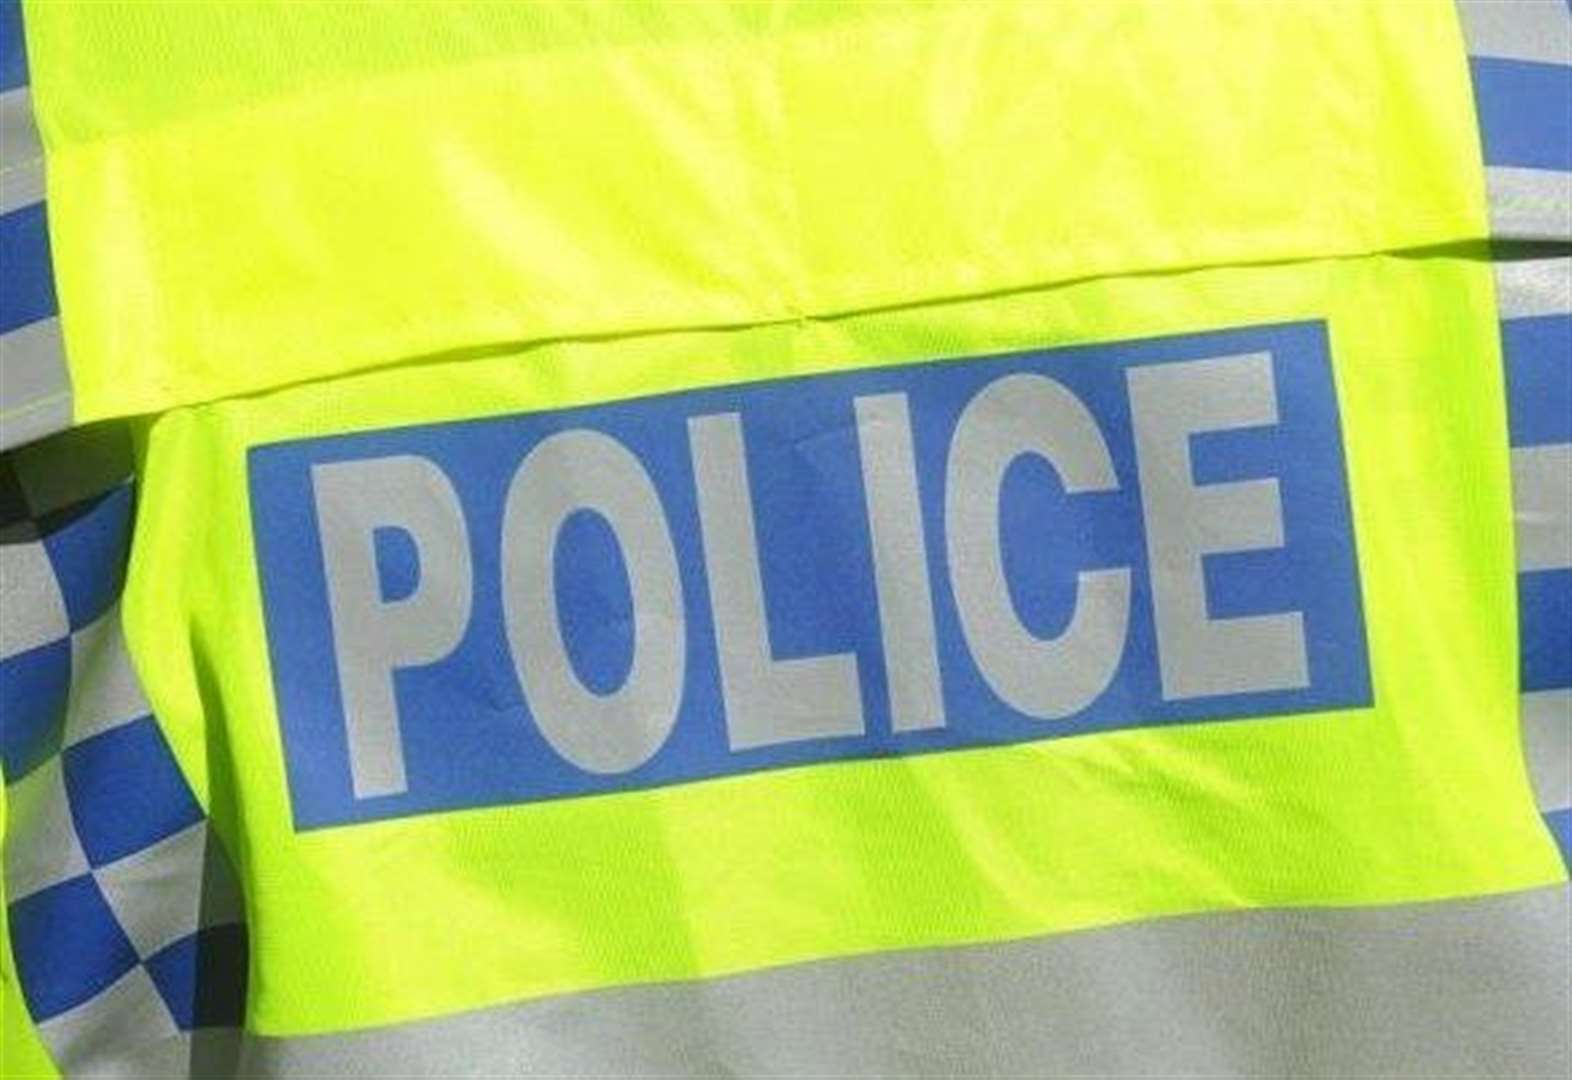 Man suffers suspected fractured jaw in attempted robbery in Halstead